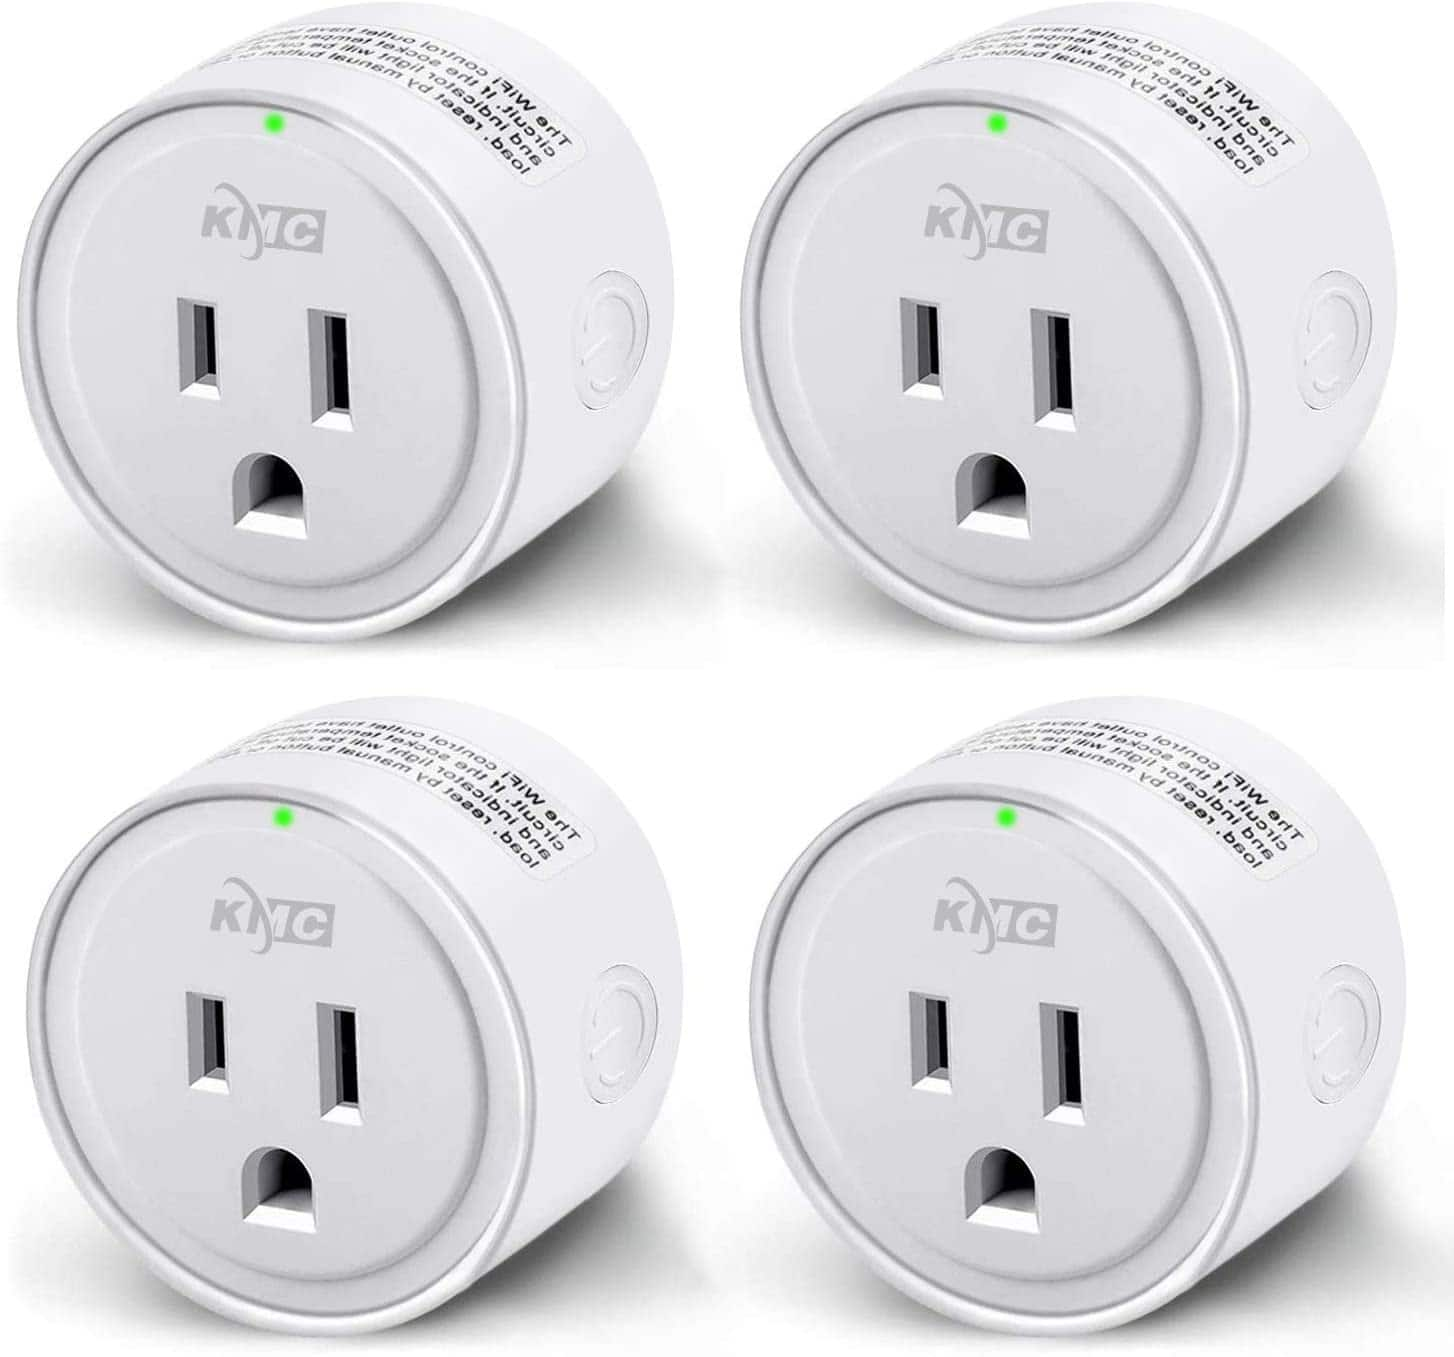 KMC WIFI MiNi Smart Plug 4 pack Works with Alexa, Google Home & IFTTT, Smart Life, No Hub Required  $19.19